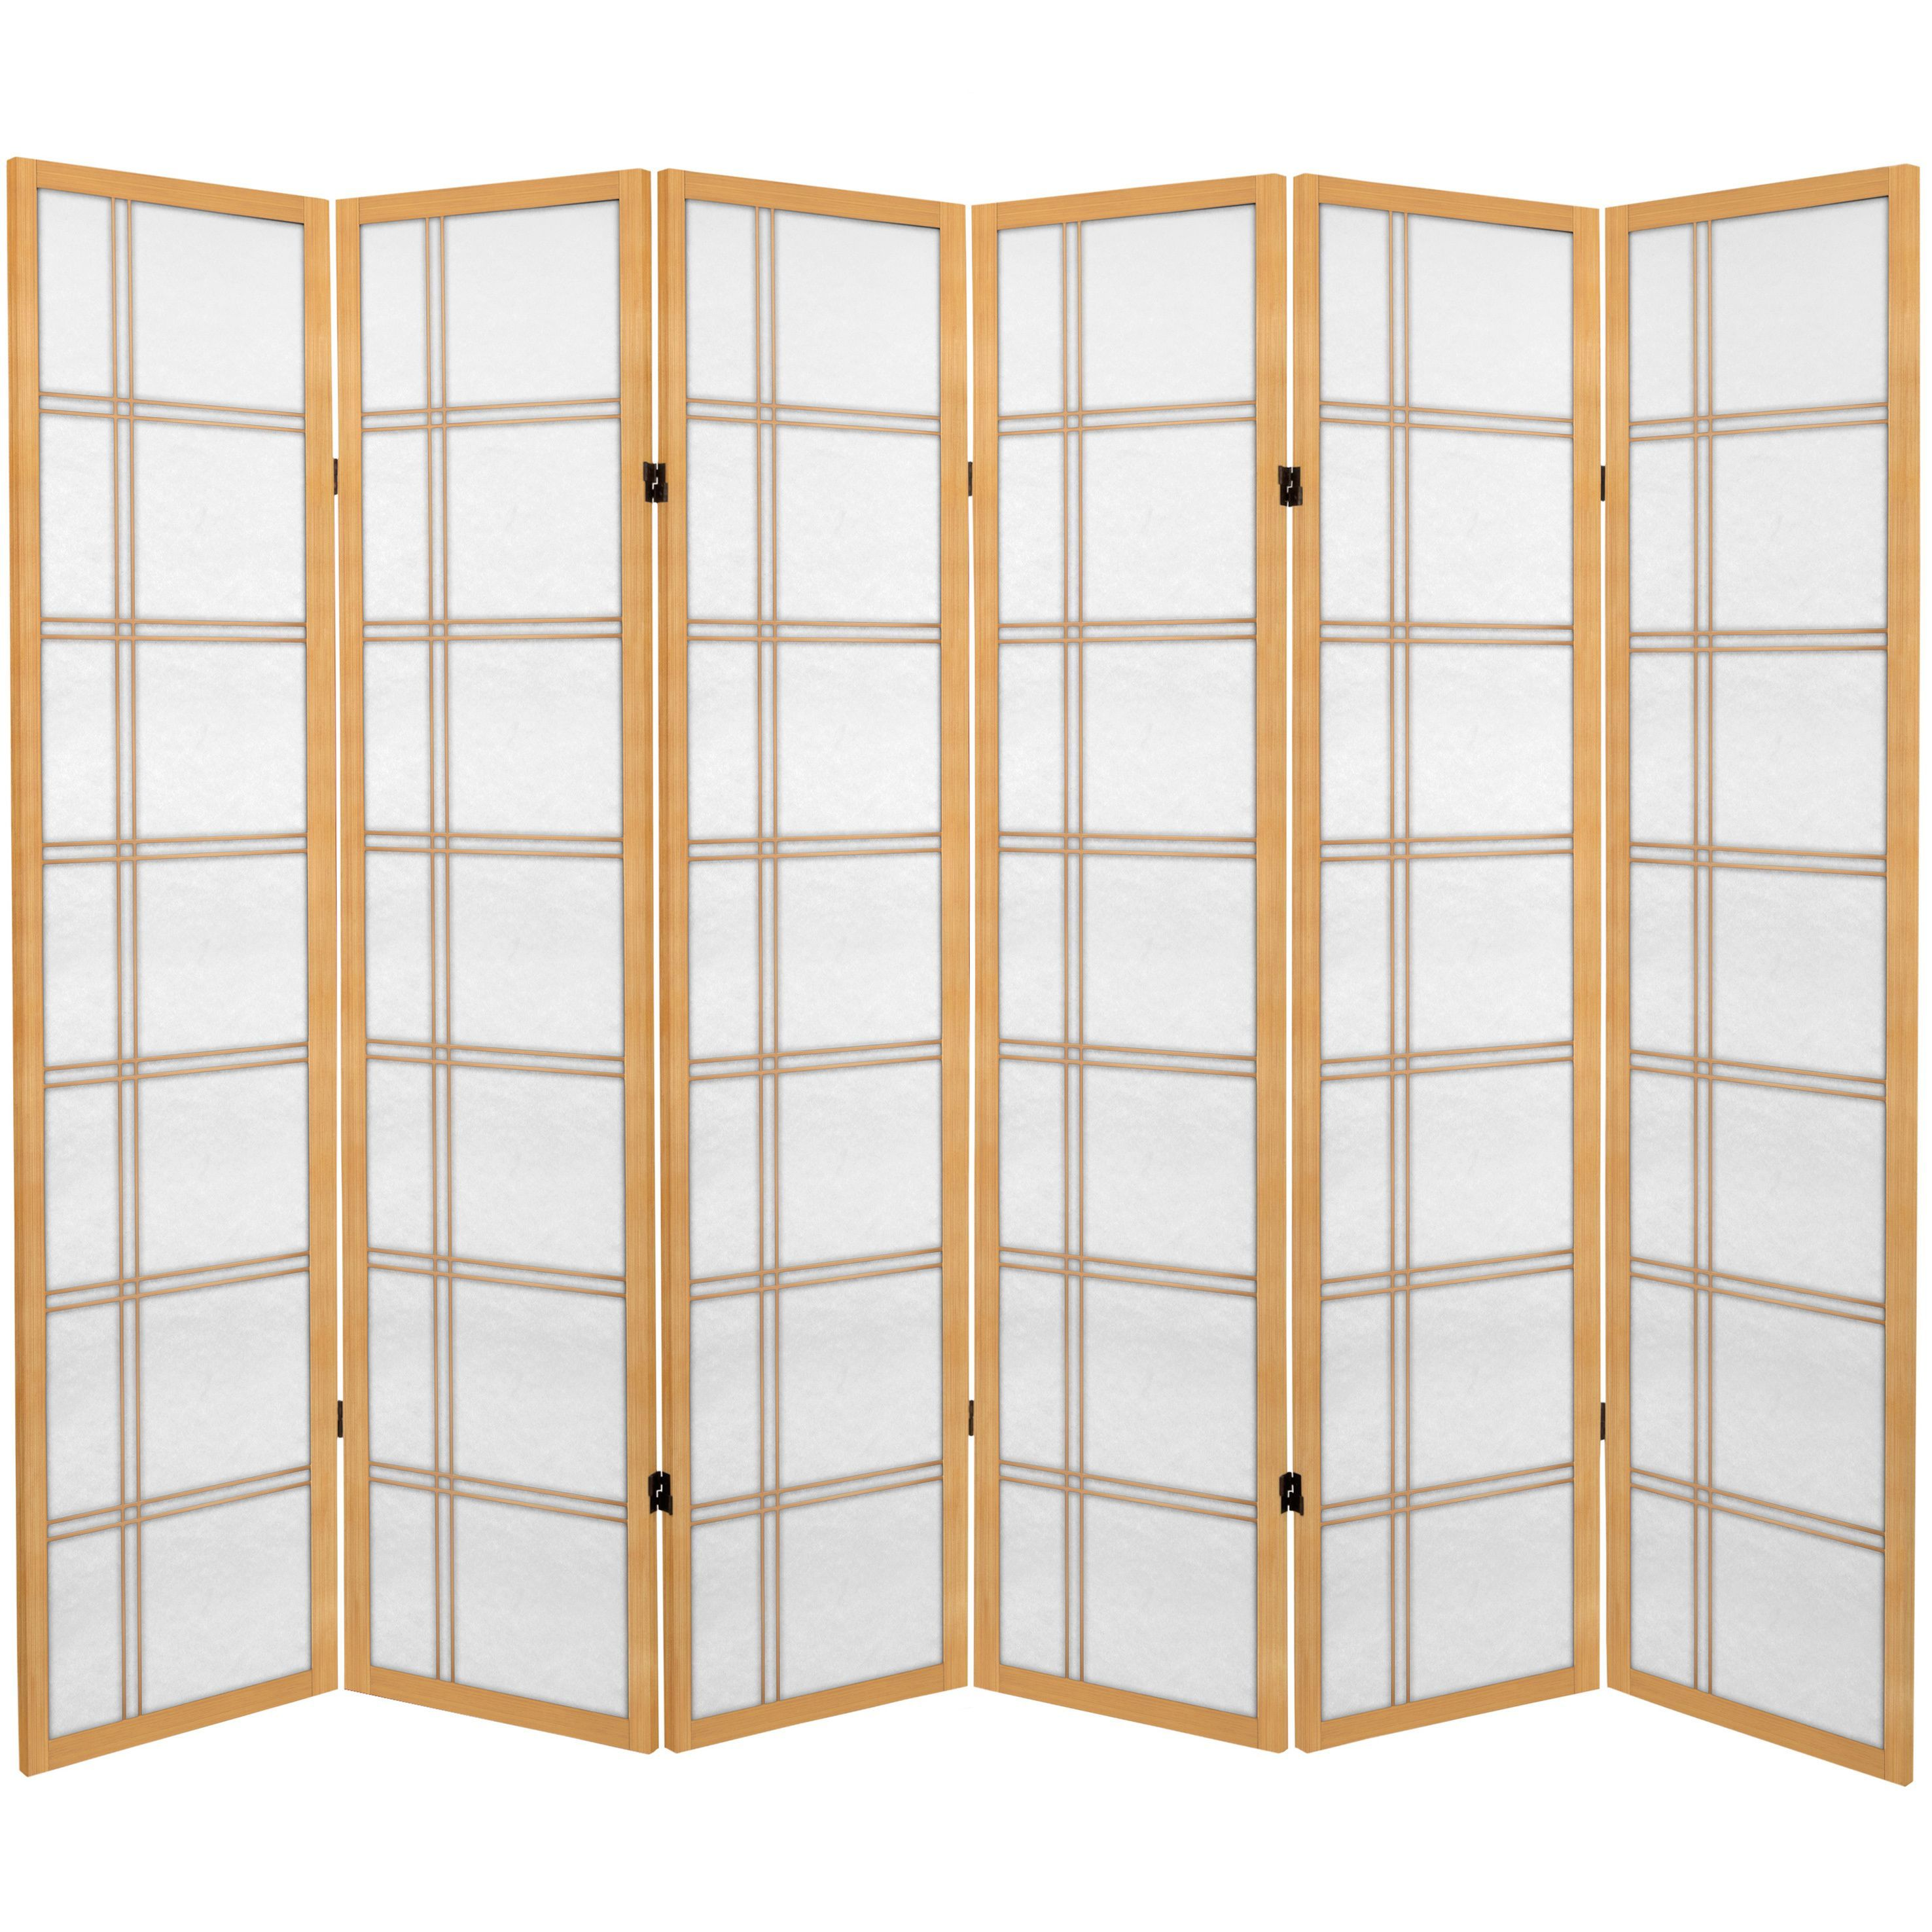 Oriental Furniture 6 Foot Tall Canvas Double Cross Room Divider